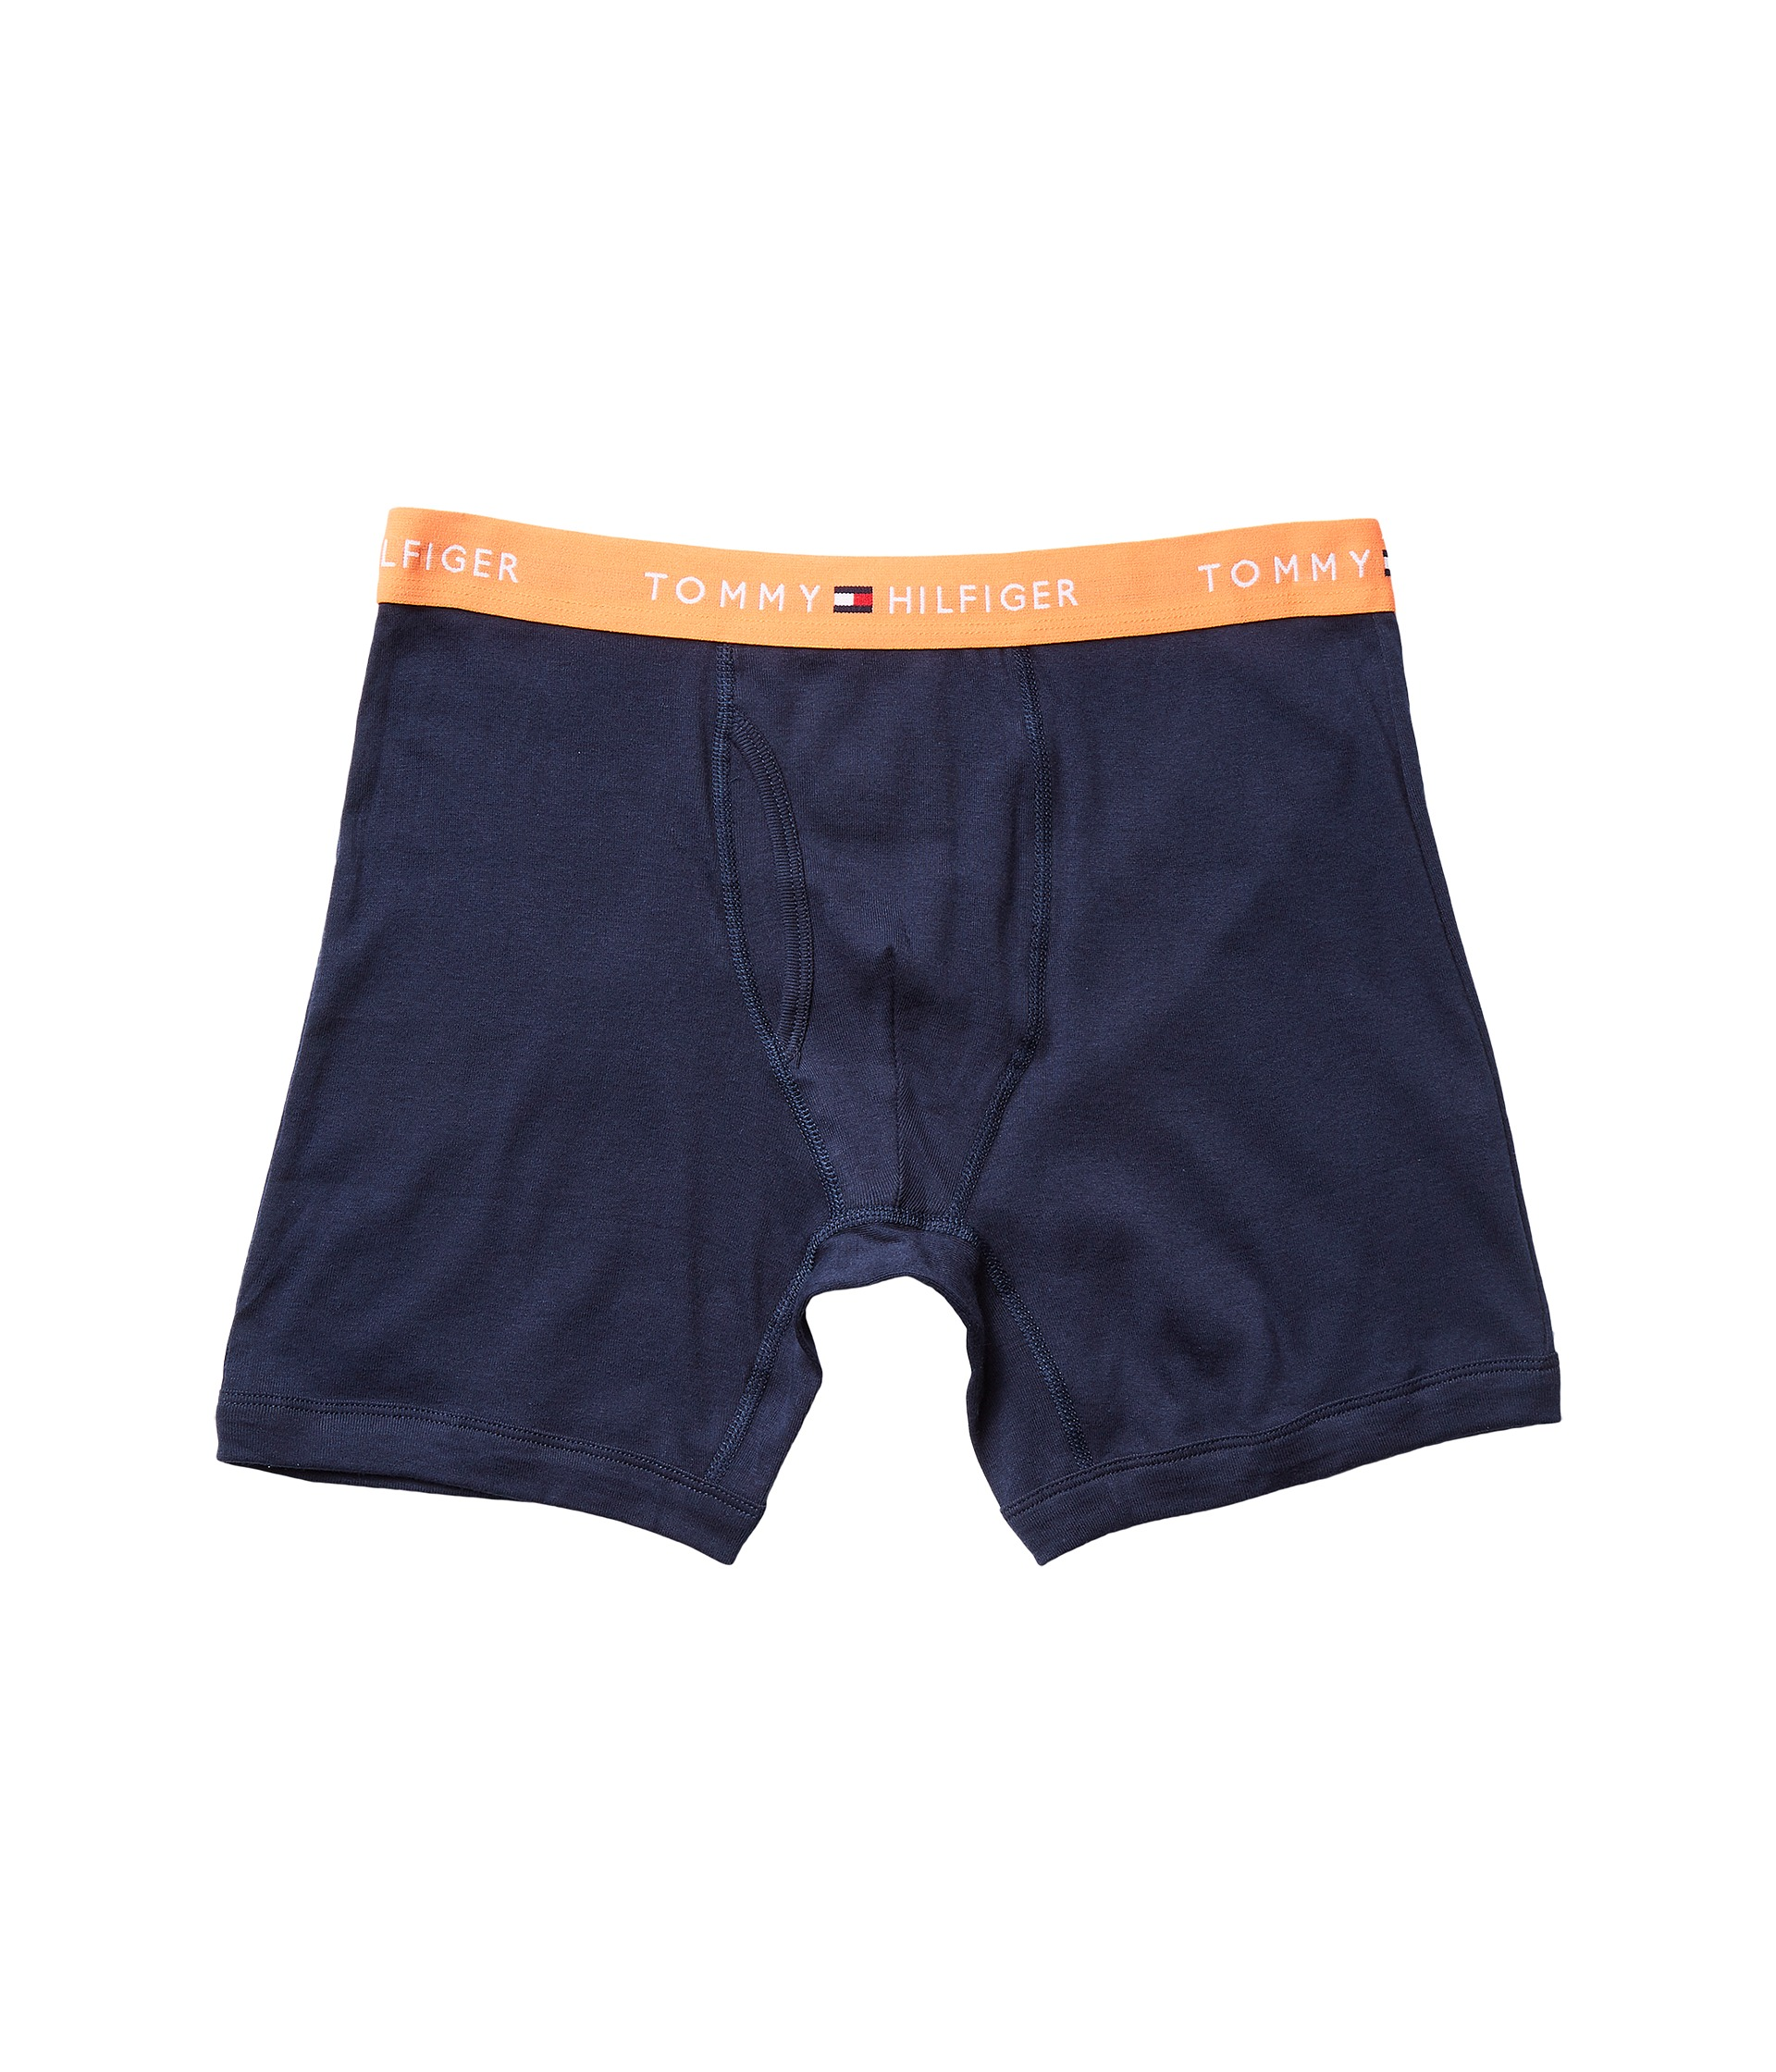 tommy hilfiger fathers boxer brief 4 pack free shipping both ways. Black Bedroom Furniture Sets. Home Design Ideas